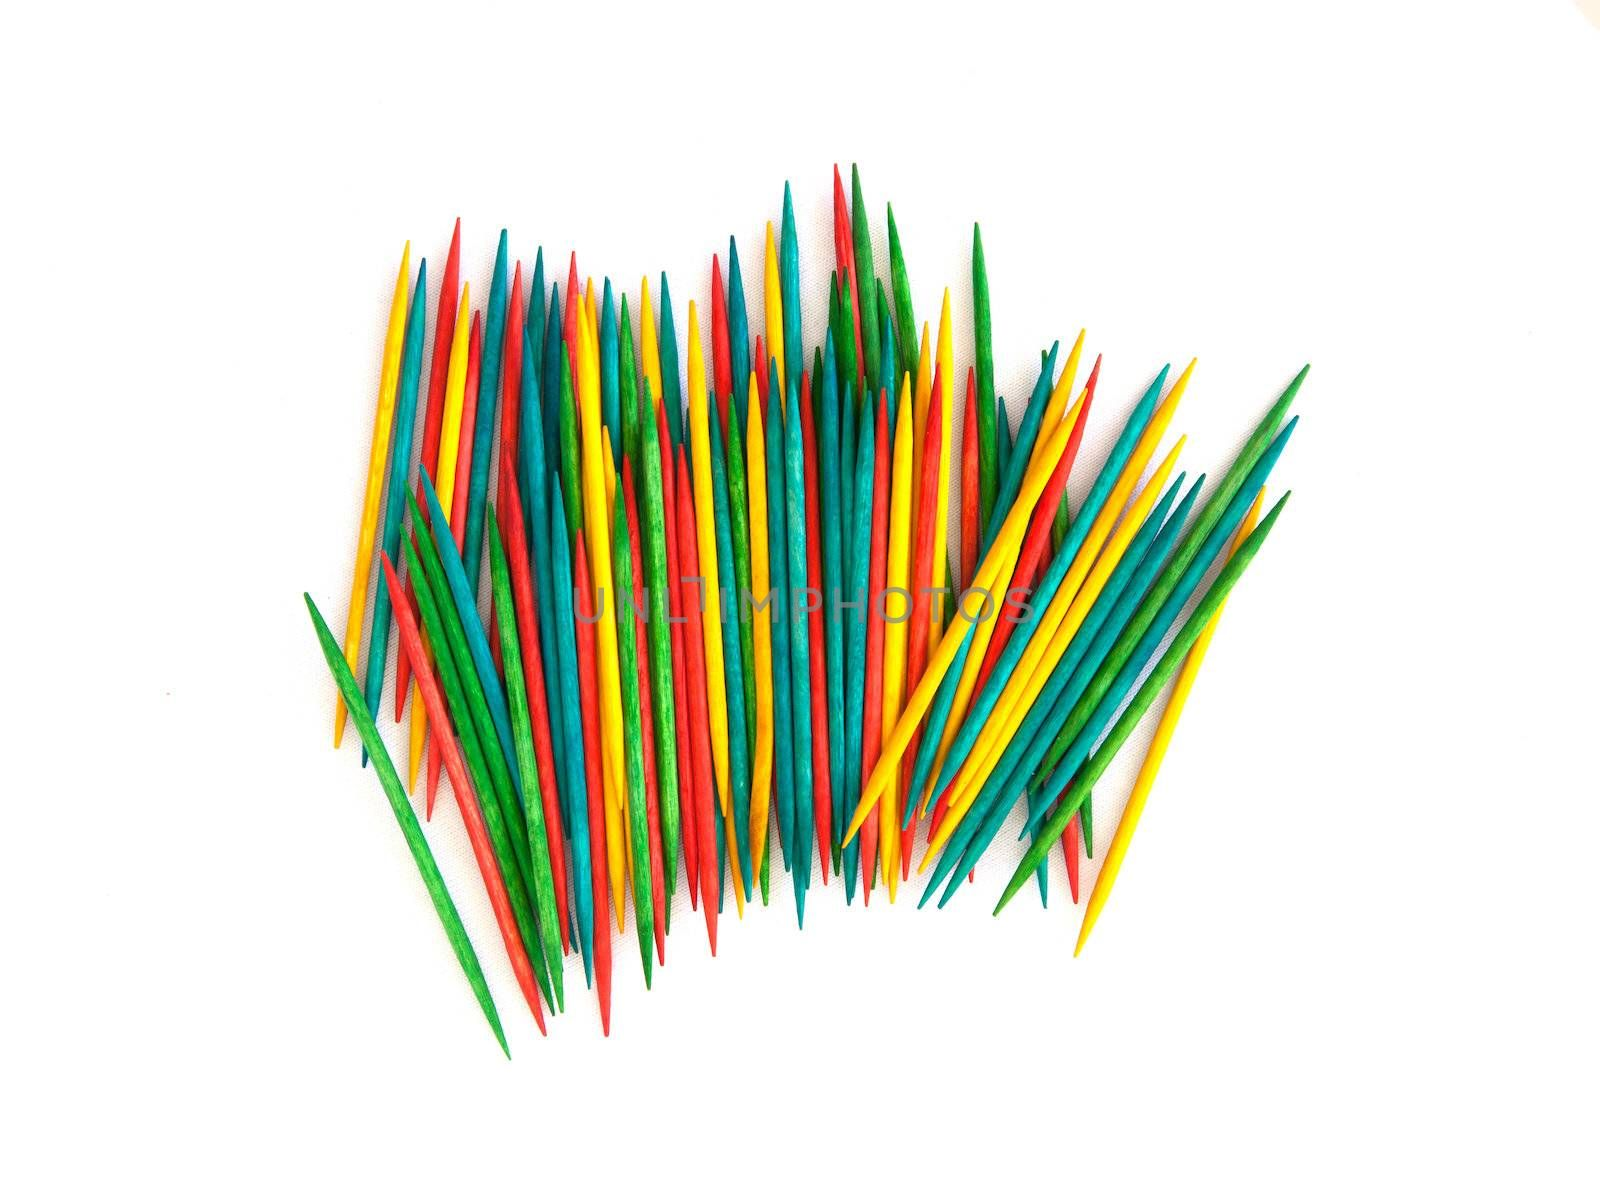 Many colorful toothpicks by michaklootwijk